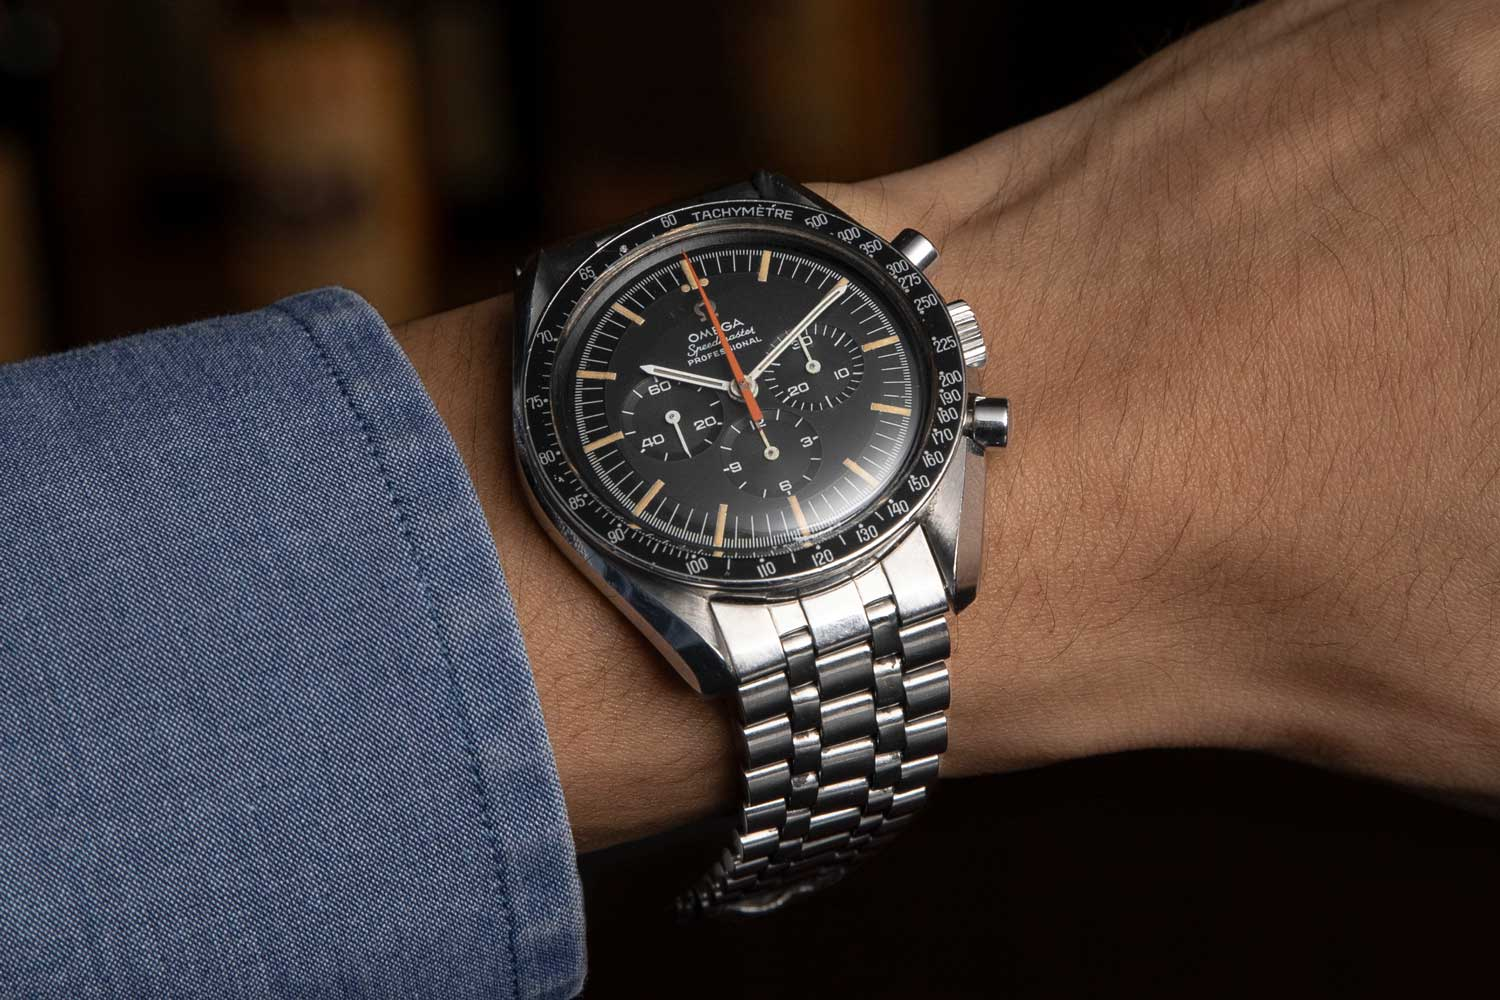 Revolution's Speedmaster Reference 145.012-67 Ultraman with a Holzer bracelet (Los Hombre Ultra), acquired from the Davidoff Brothers (©Revolution)